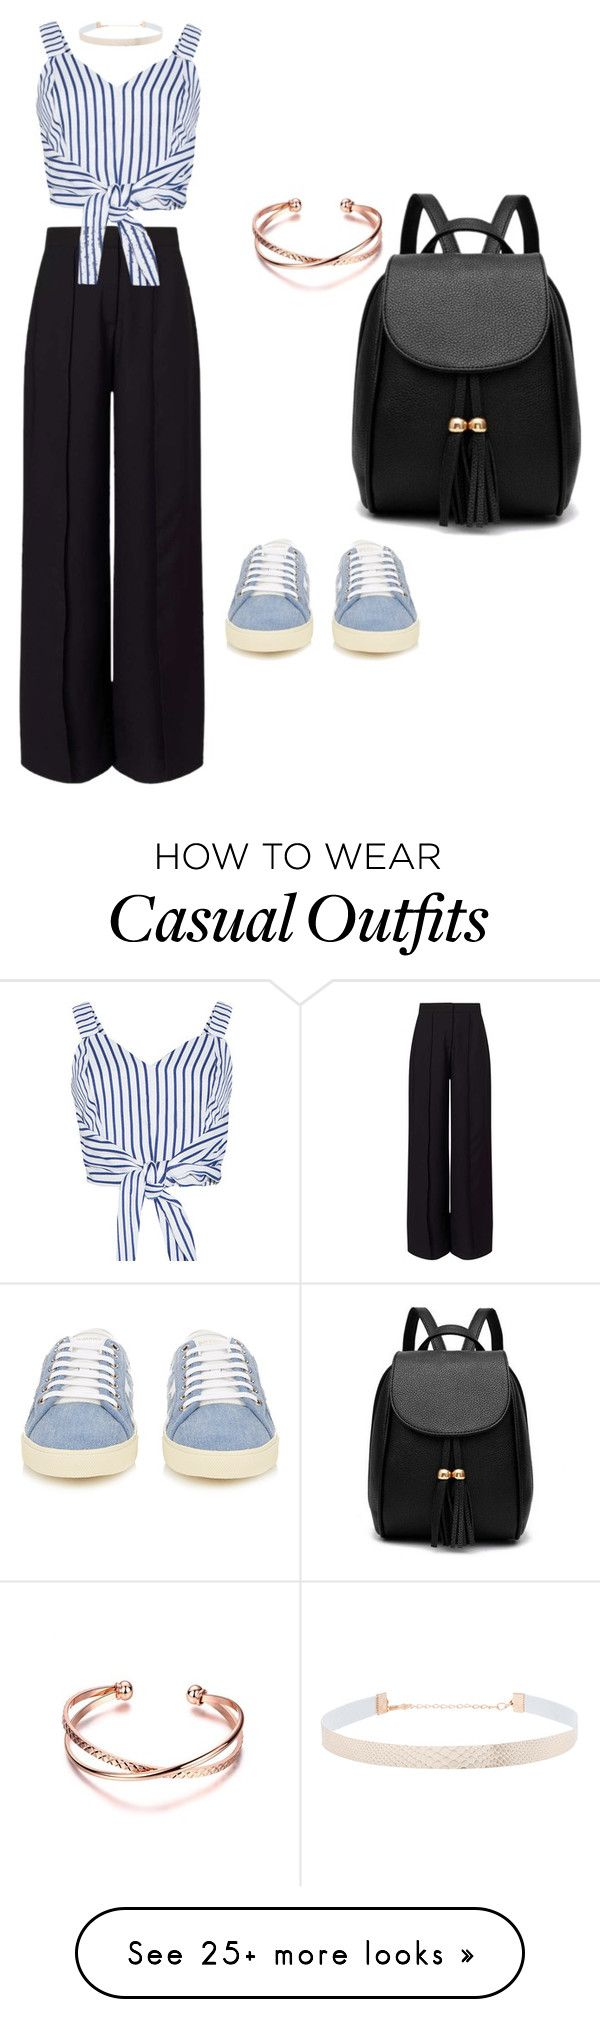 """Casual"" by emma-jovicevic on Polyvore featuring Miss Selfridge, WithChic, Yves Saint Laurent and Eloquii"